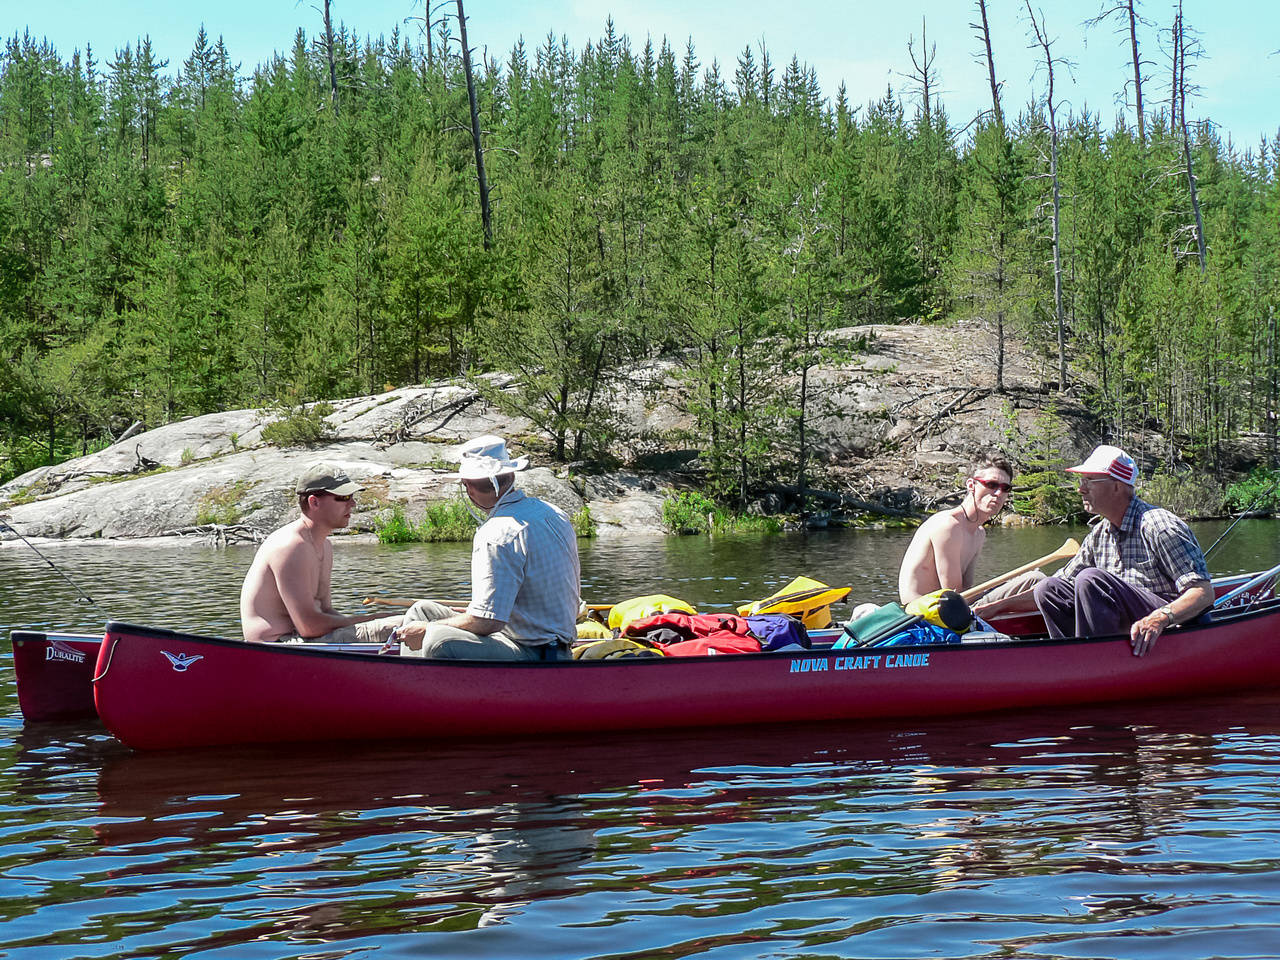 Planning our route as we continue down Mather Lake.